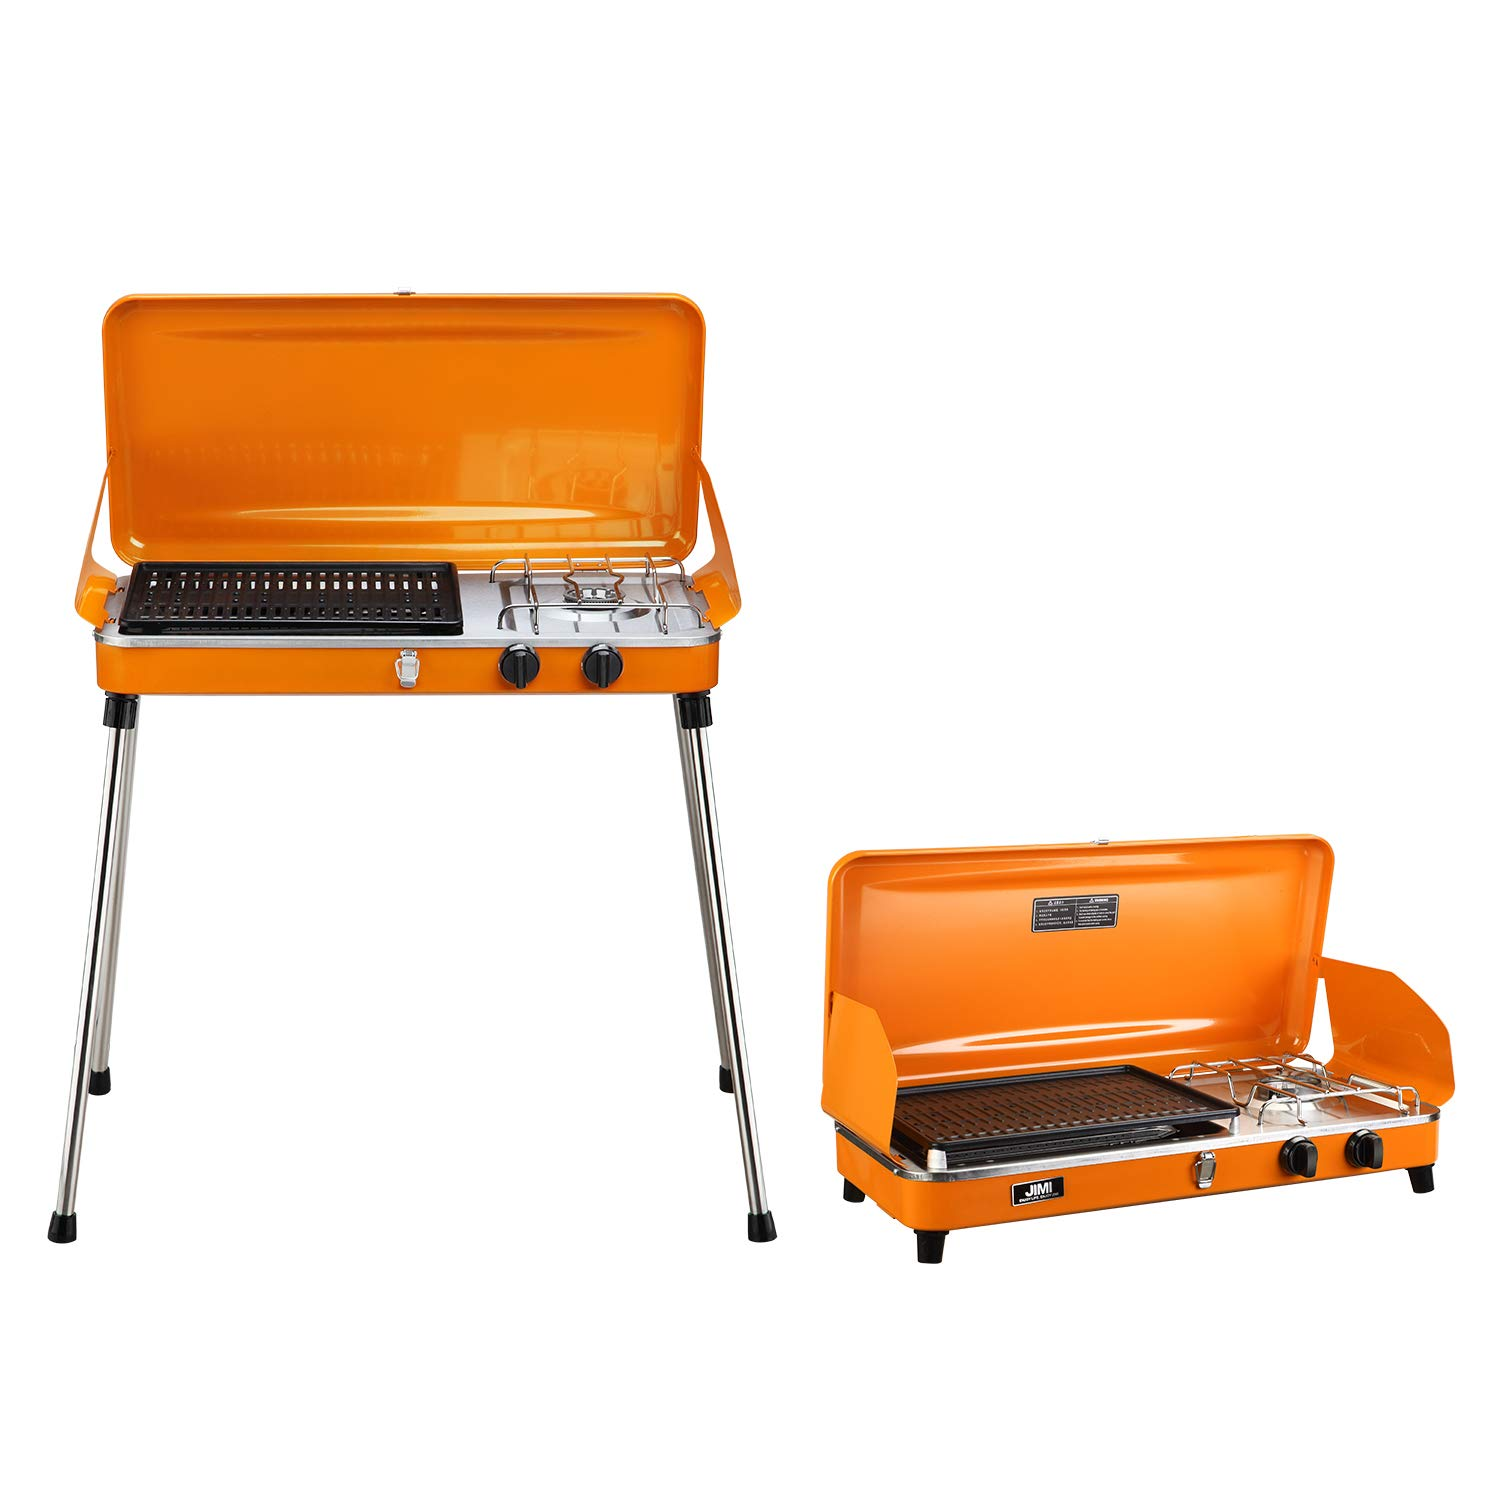 Liquid Propane BBQ Gas Grill, Barbecue Grill Outdoor Cooking Camping Stove Portable Stainless Steel, Orange Wonlink